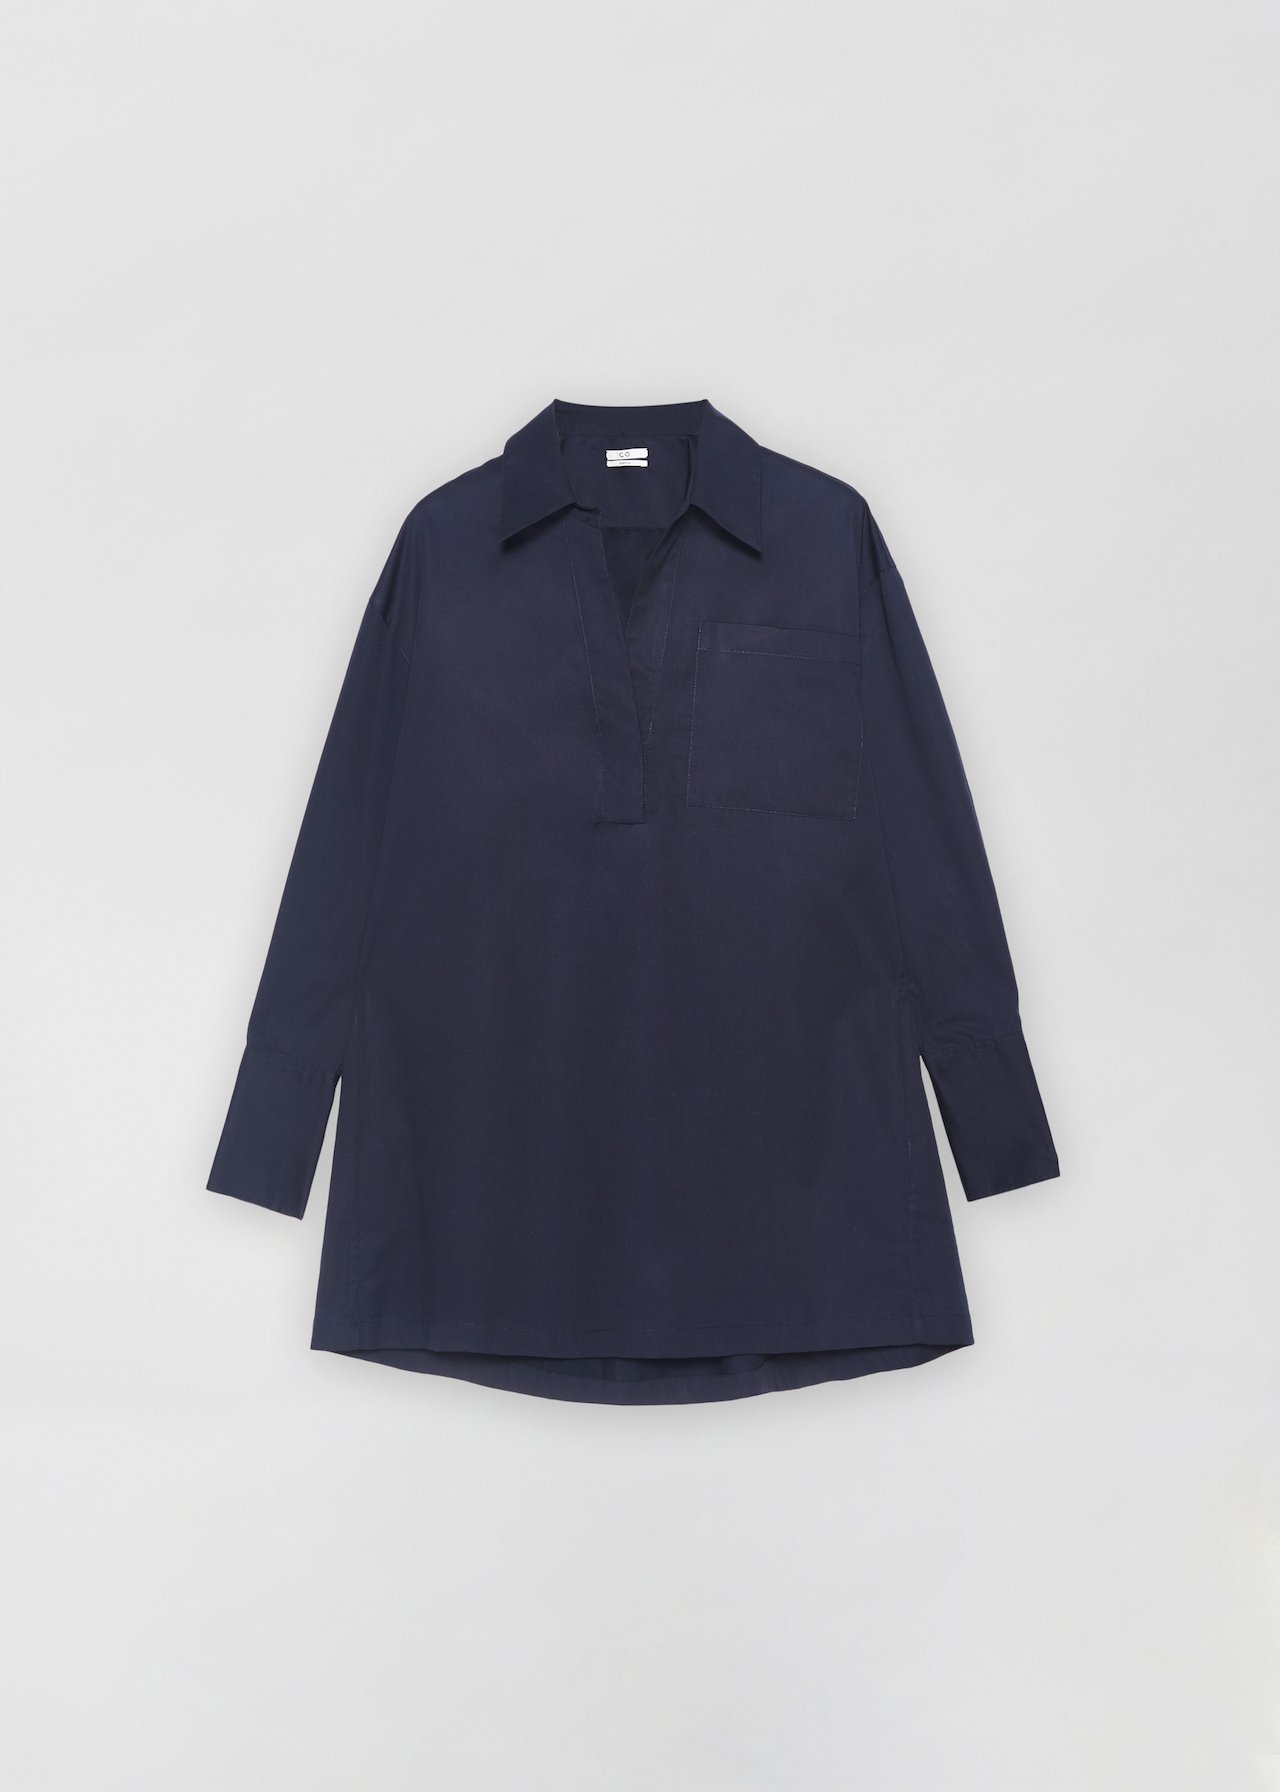 Half Placket Shirt - Black in Navy by Co Collections